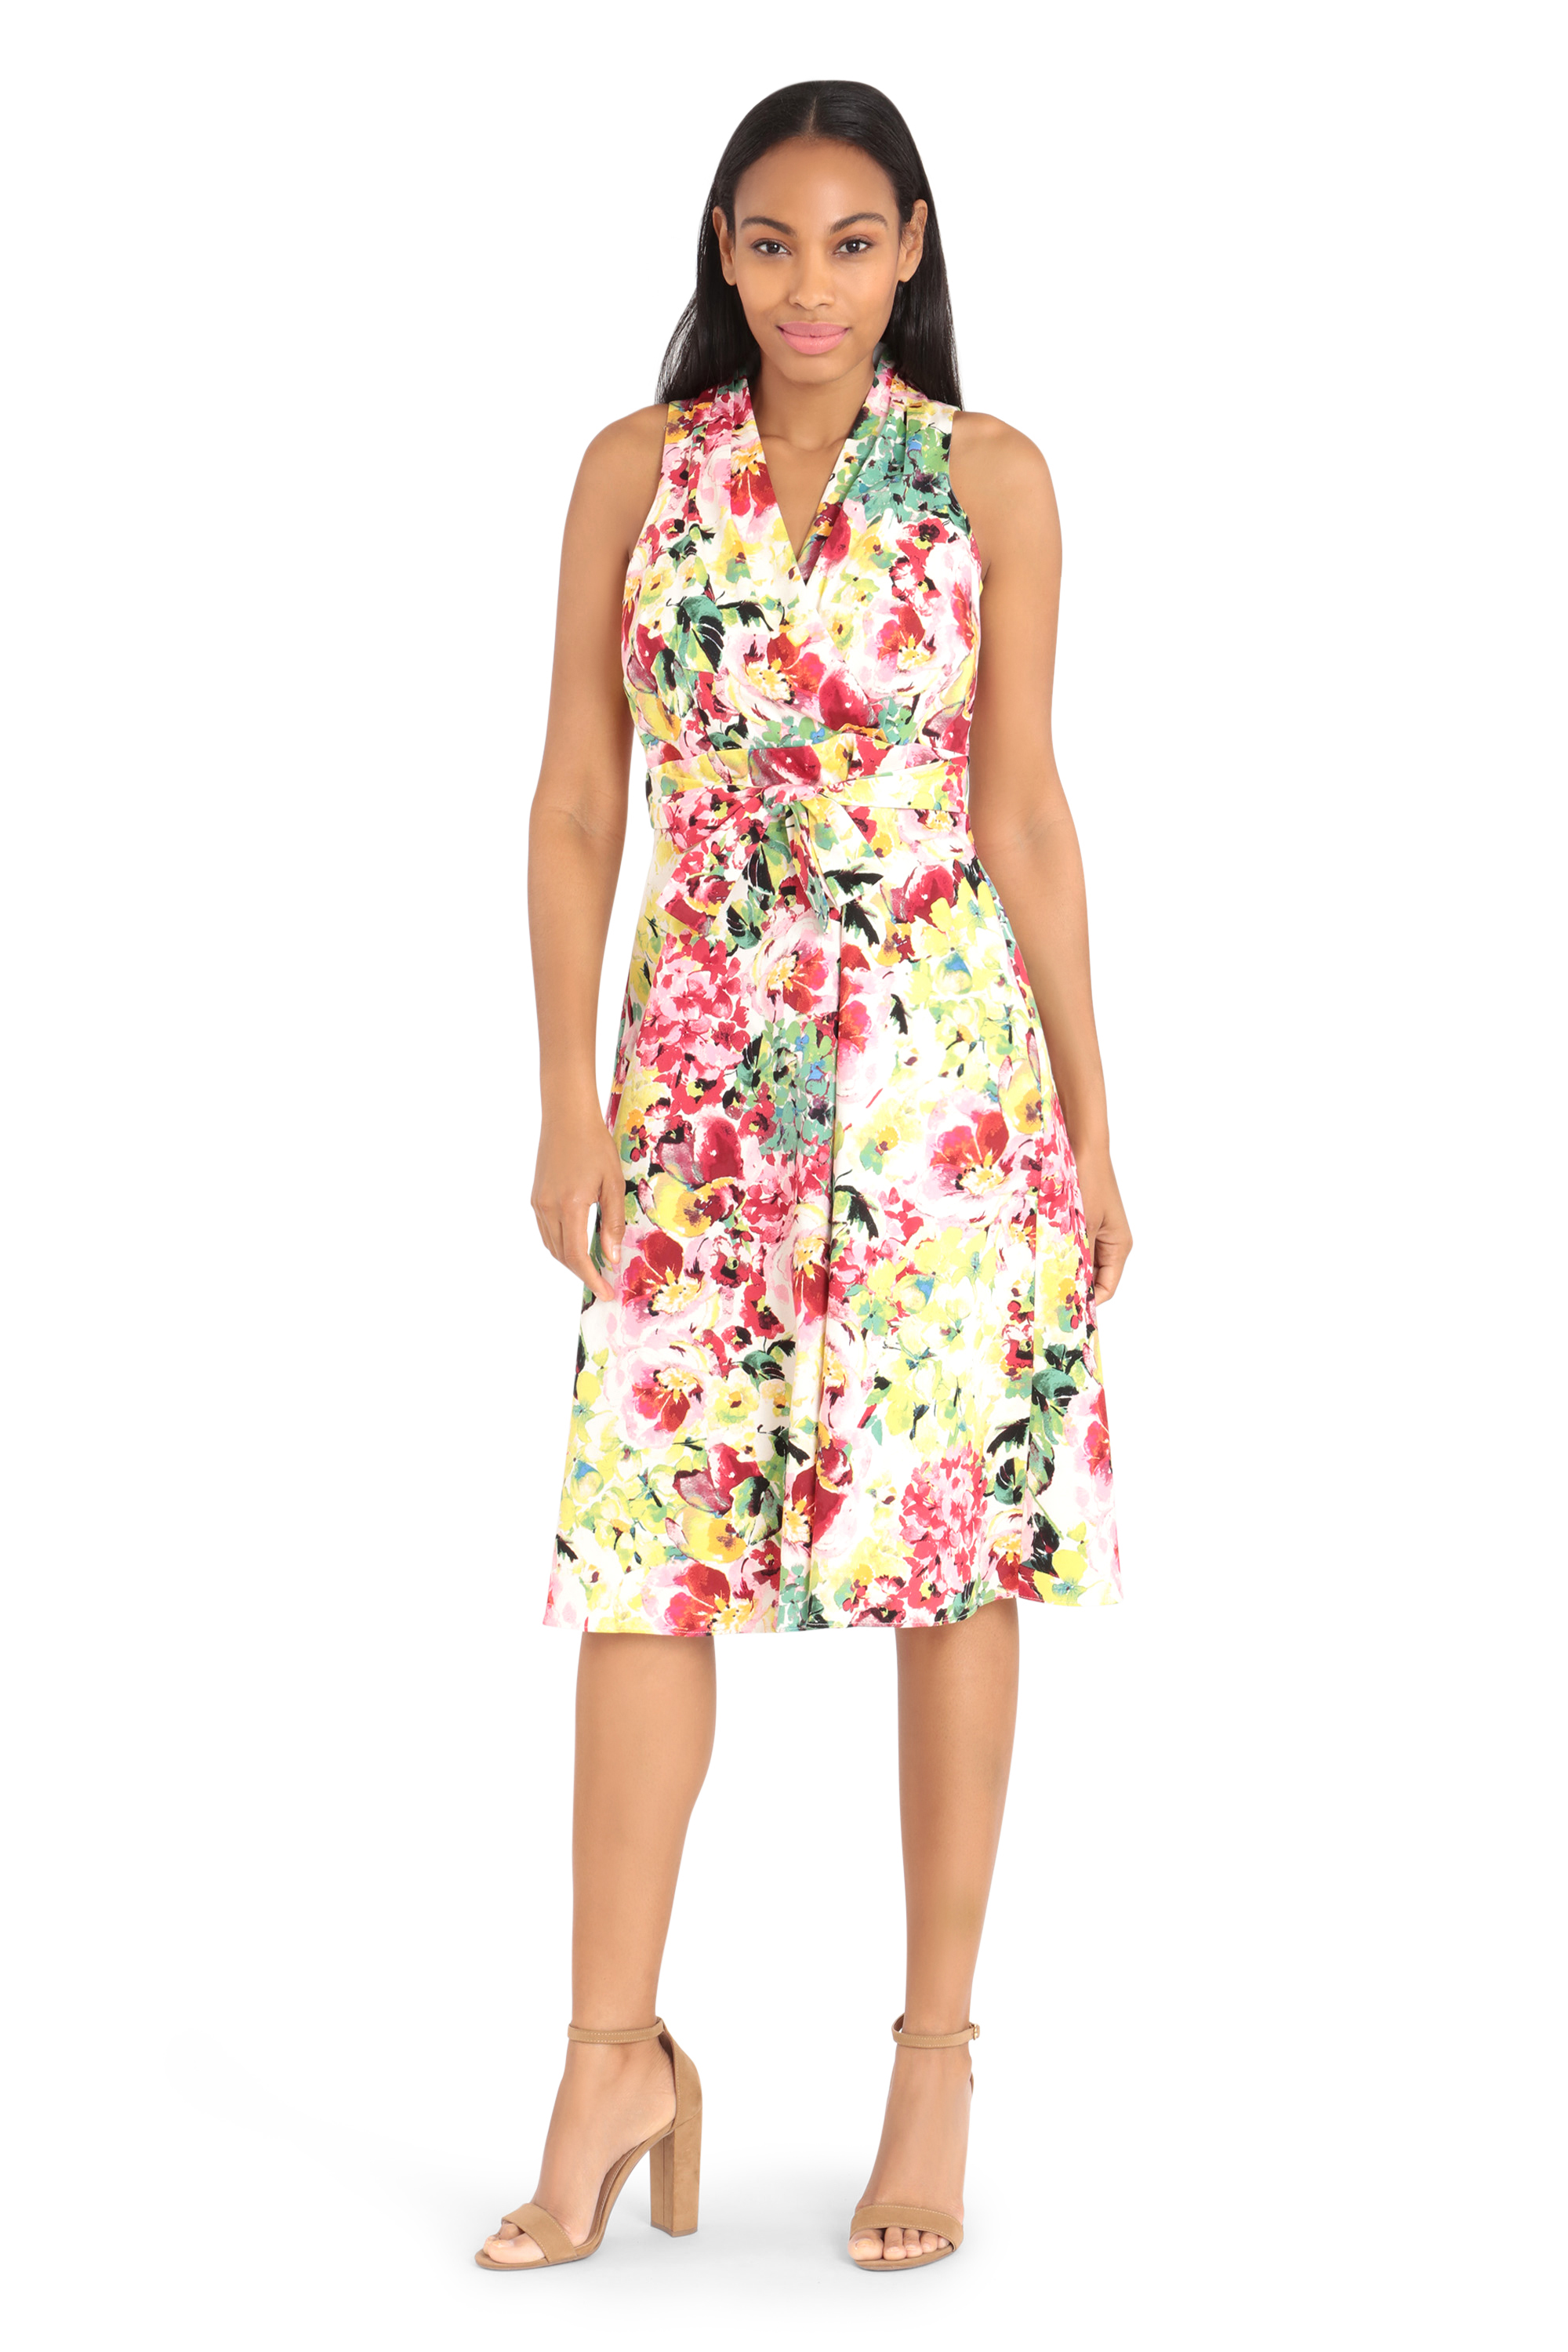 Summer Colors Floral Dress -Multi - Front